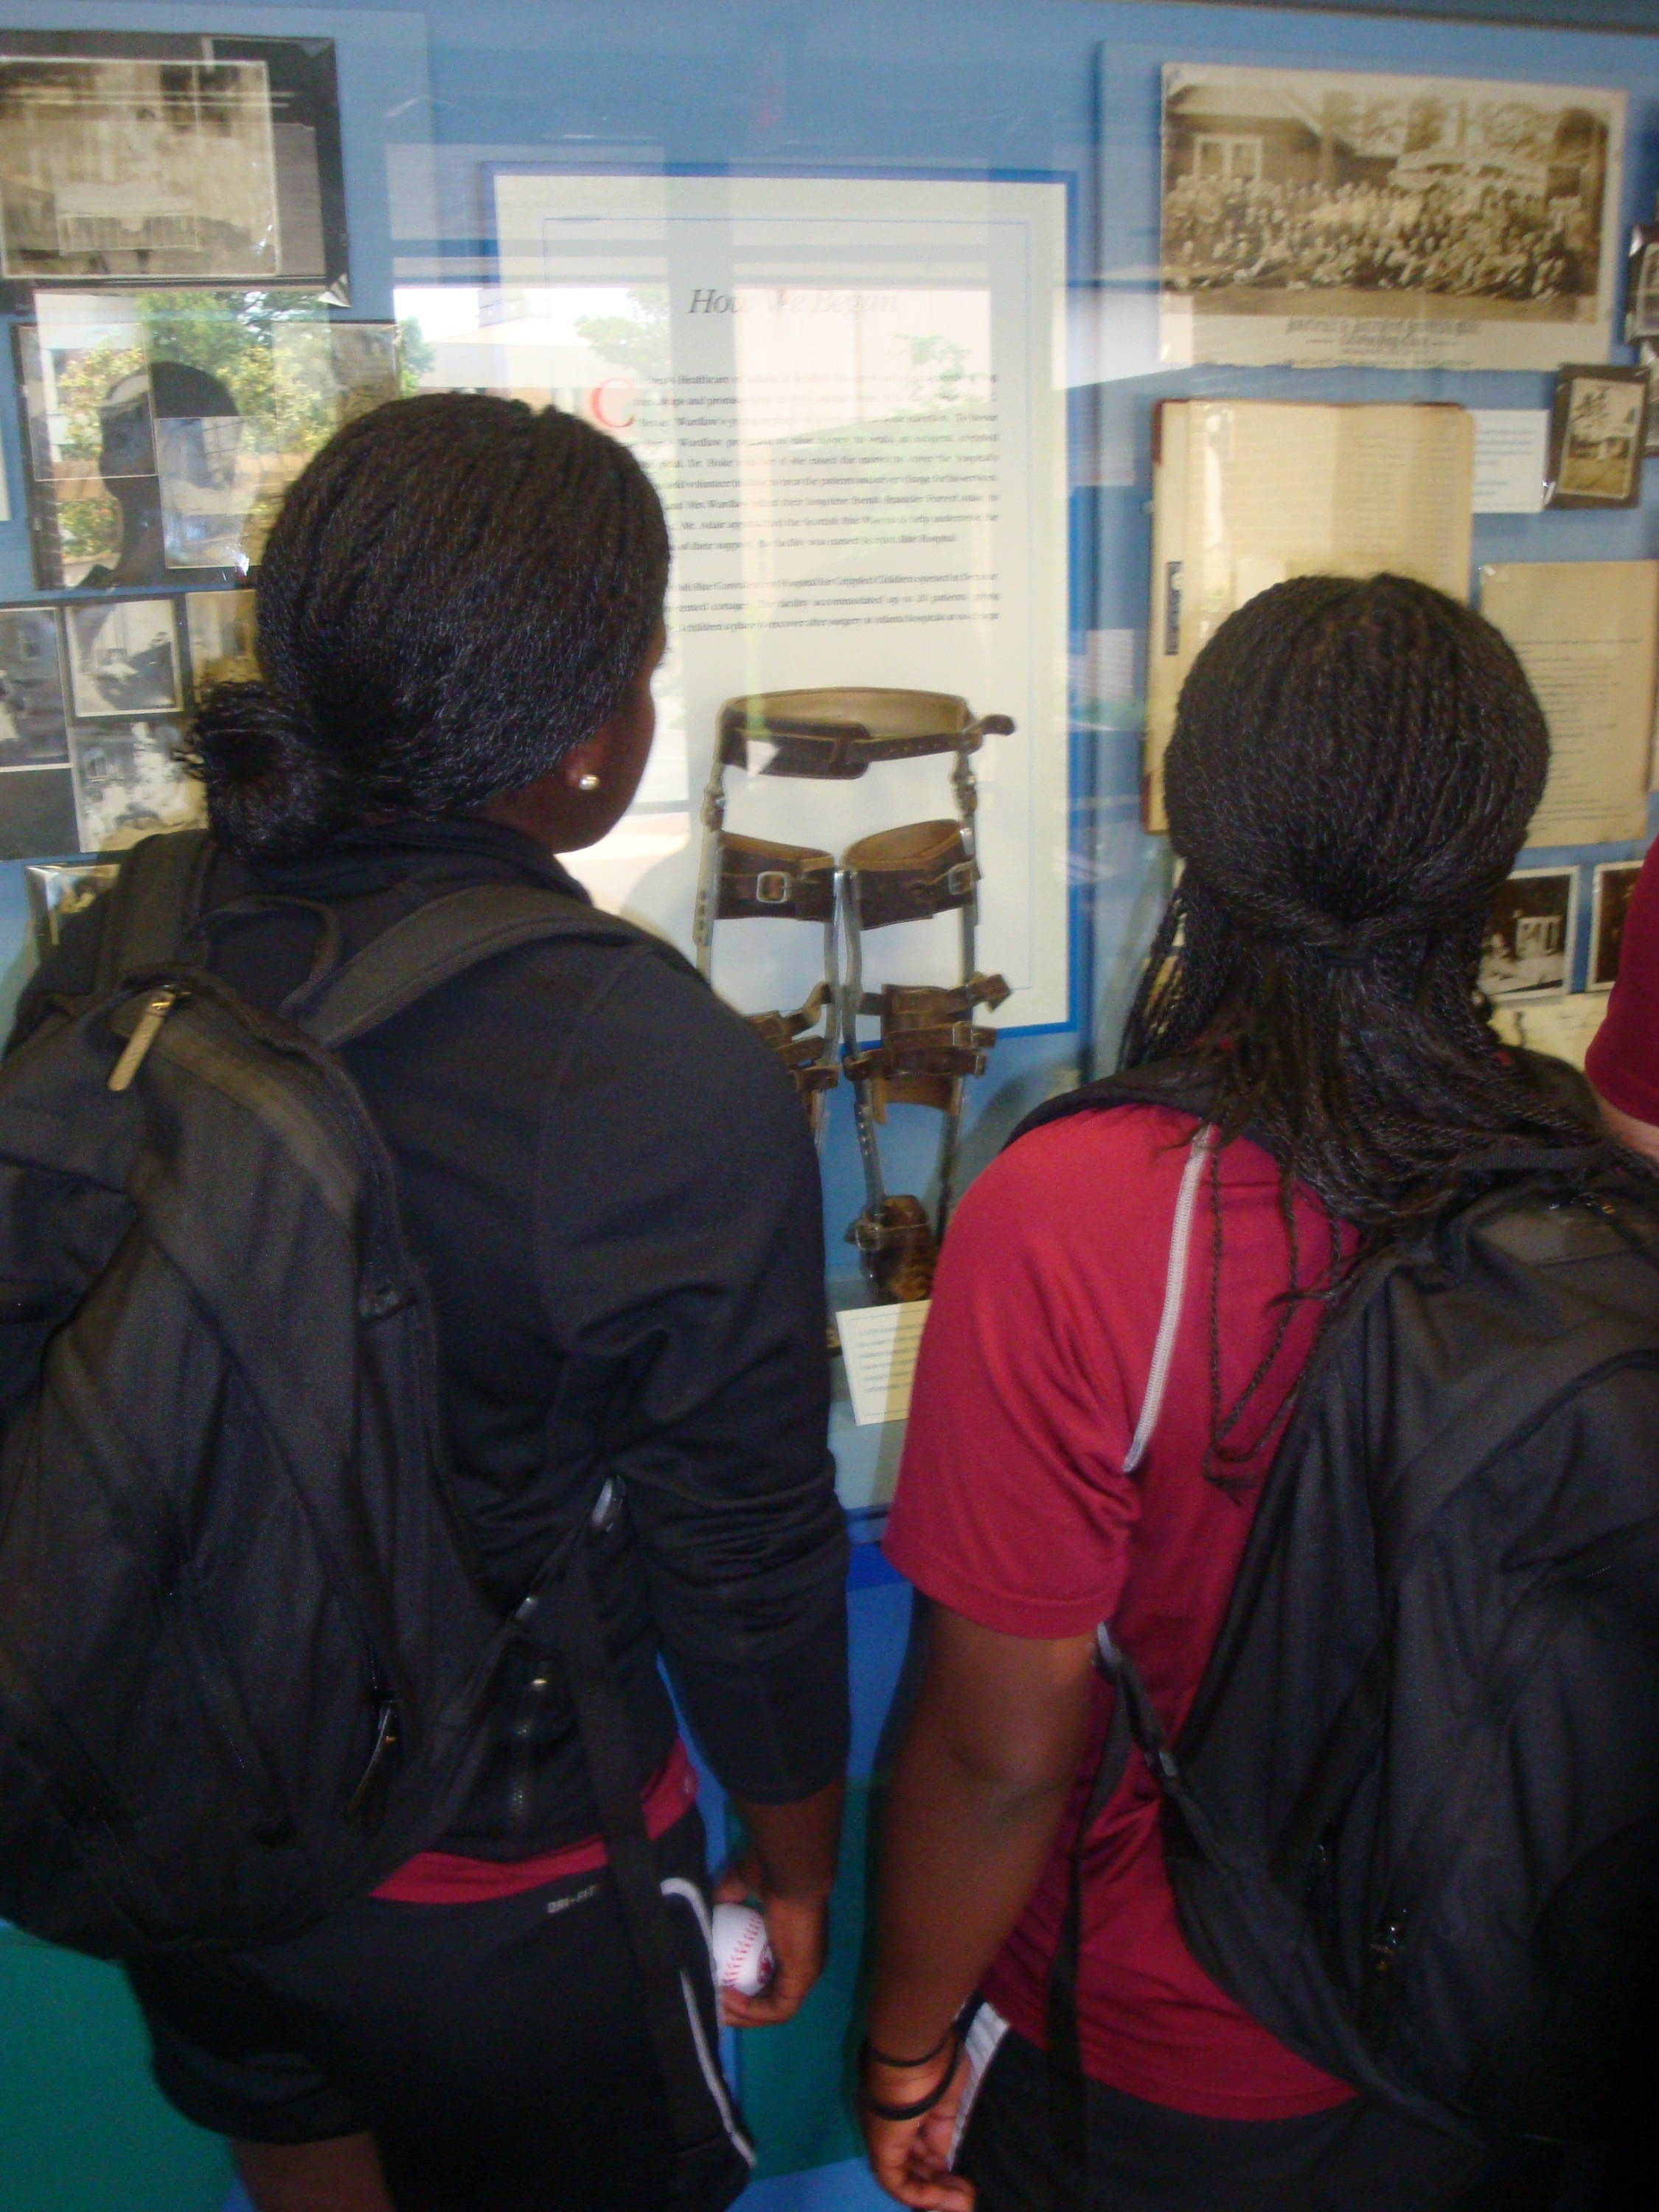 Morgan Bullock (L) and Amber Bryant (R) look at an old children's brace